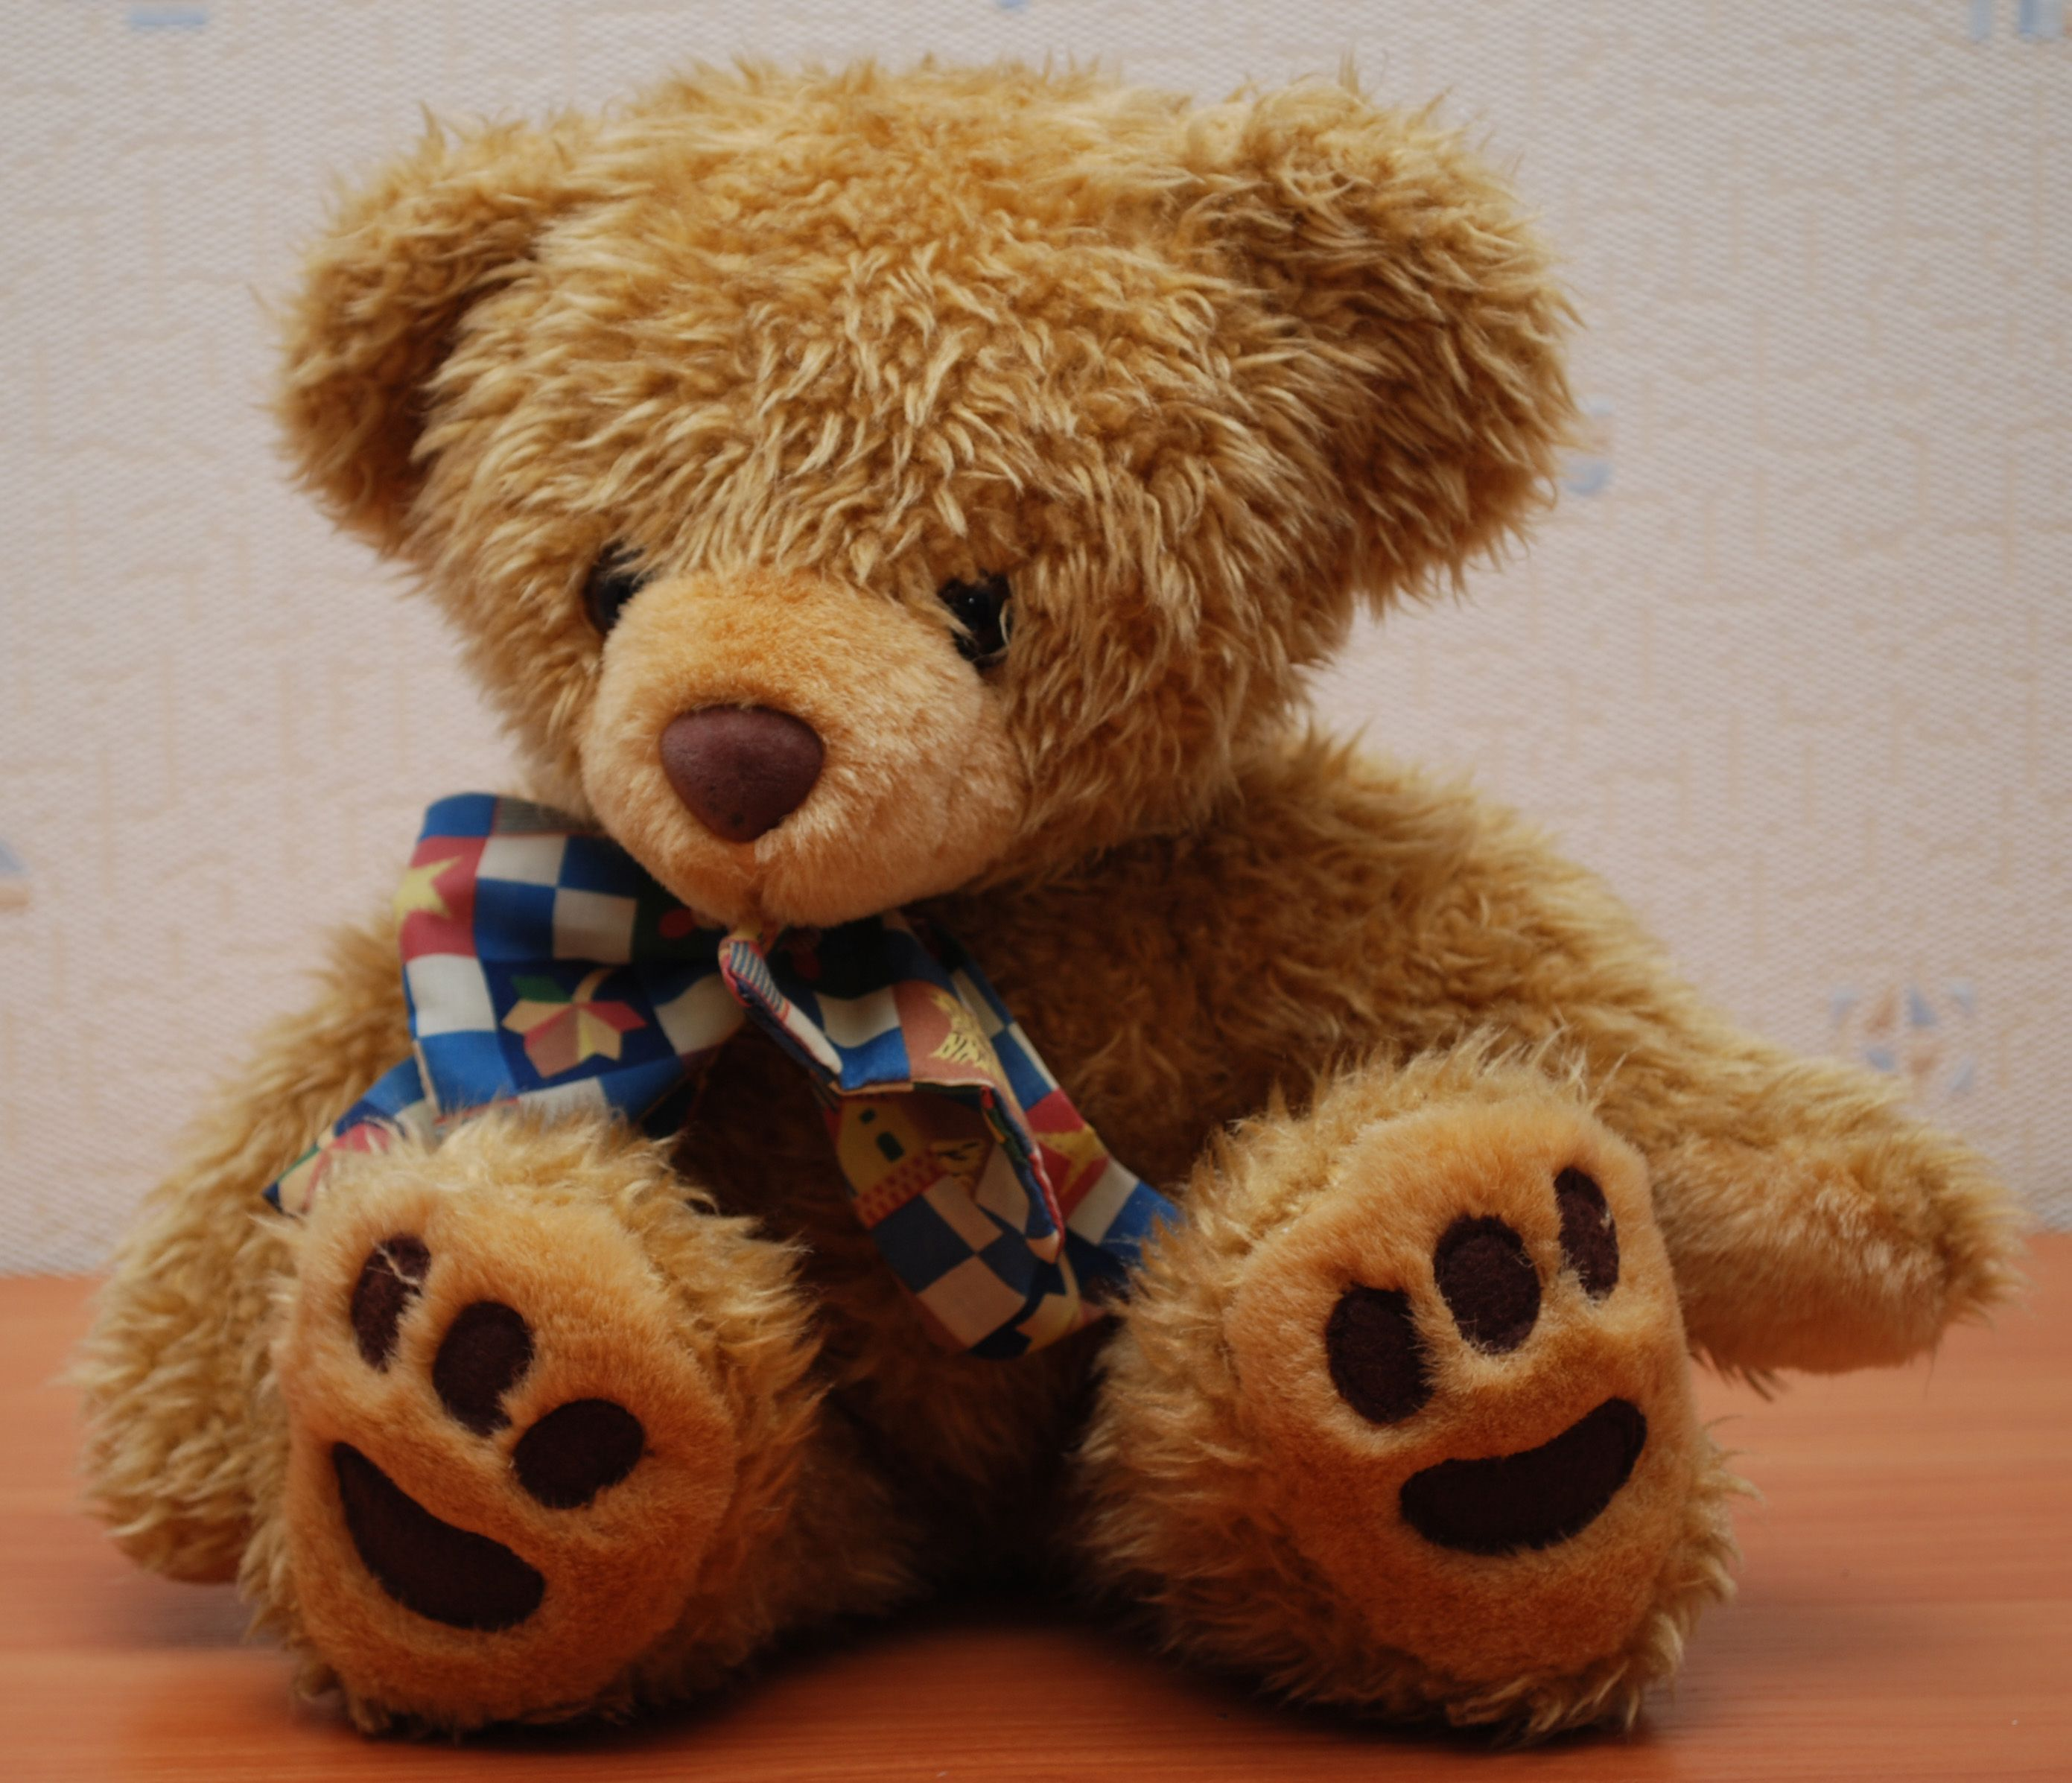 hd wallpapers - download free teddy bear wallpaper with hq (1080p